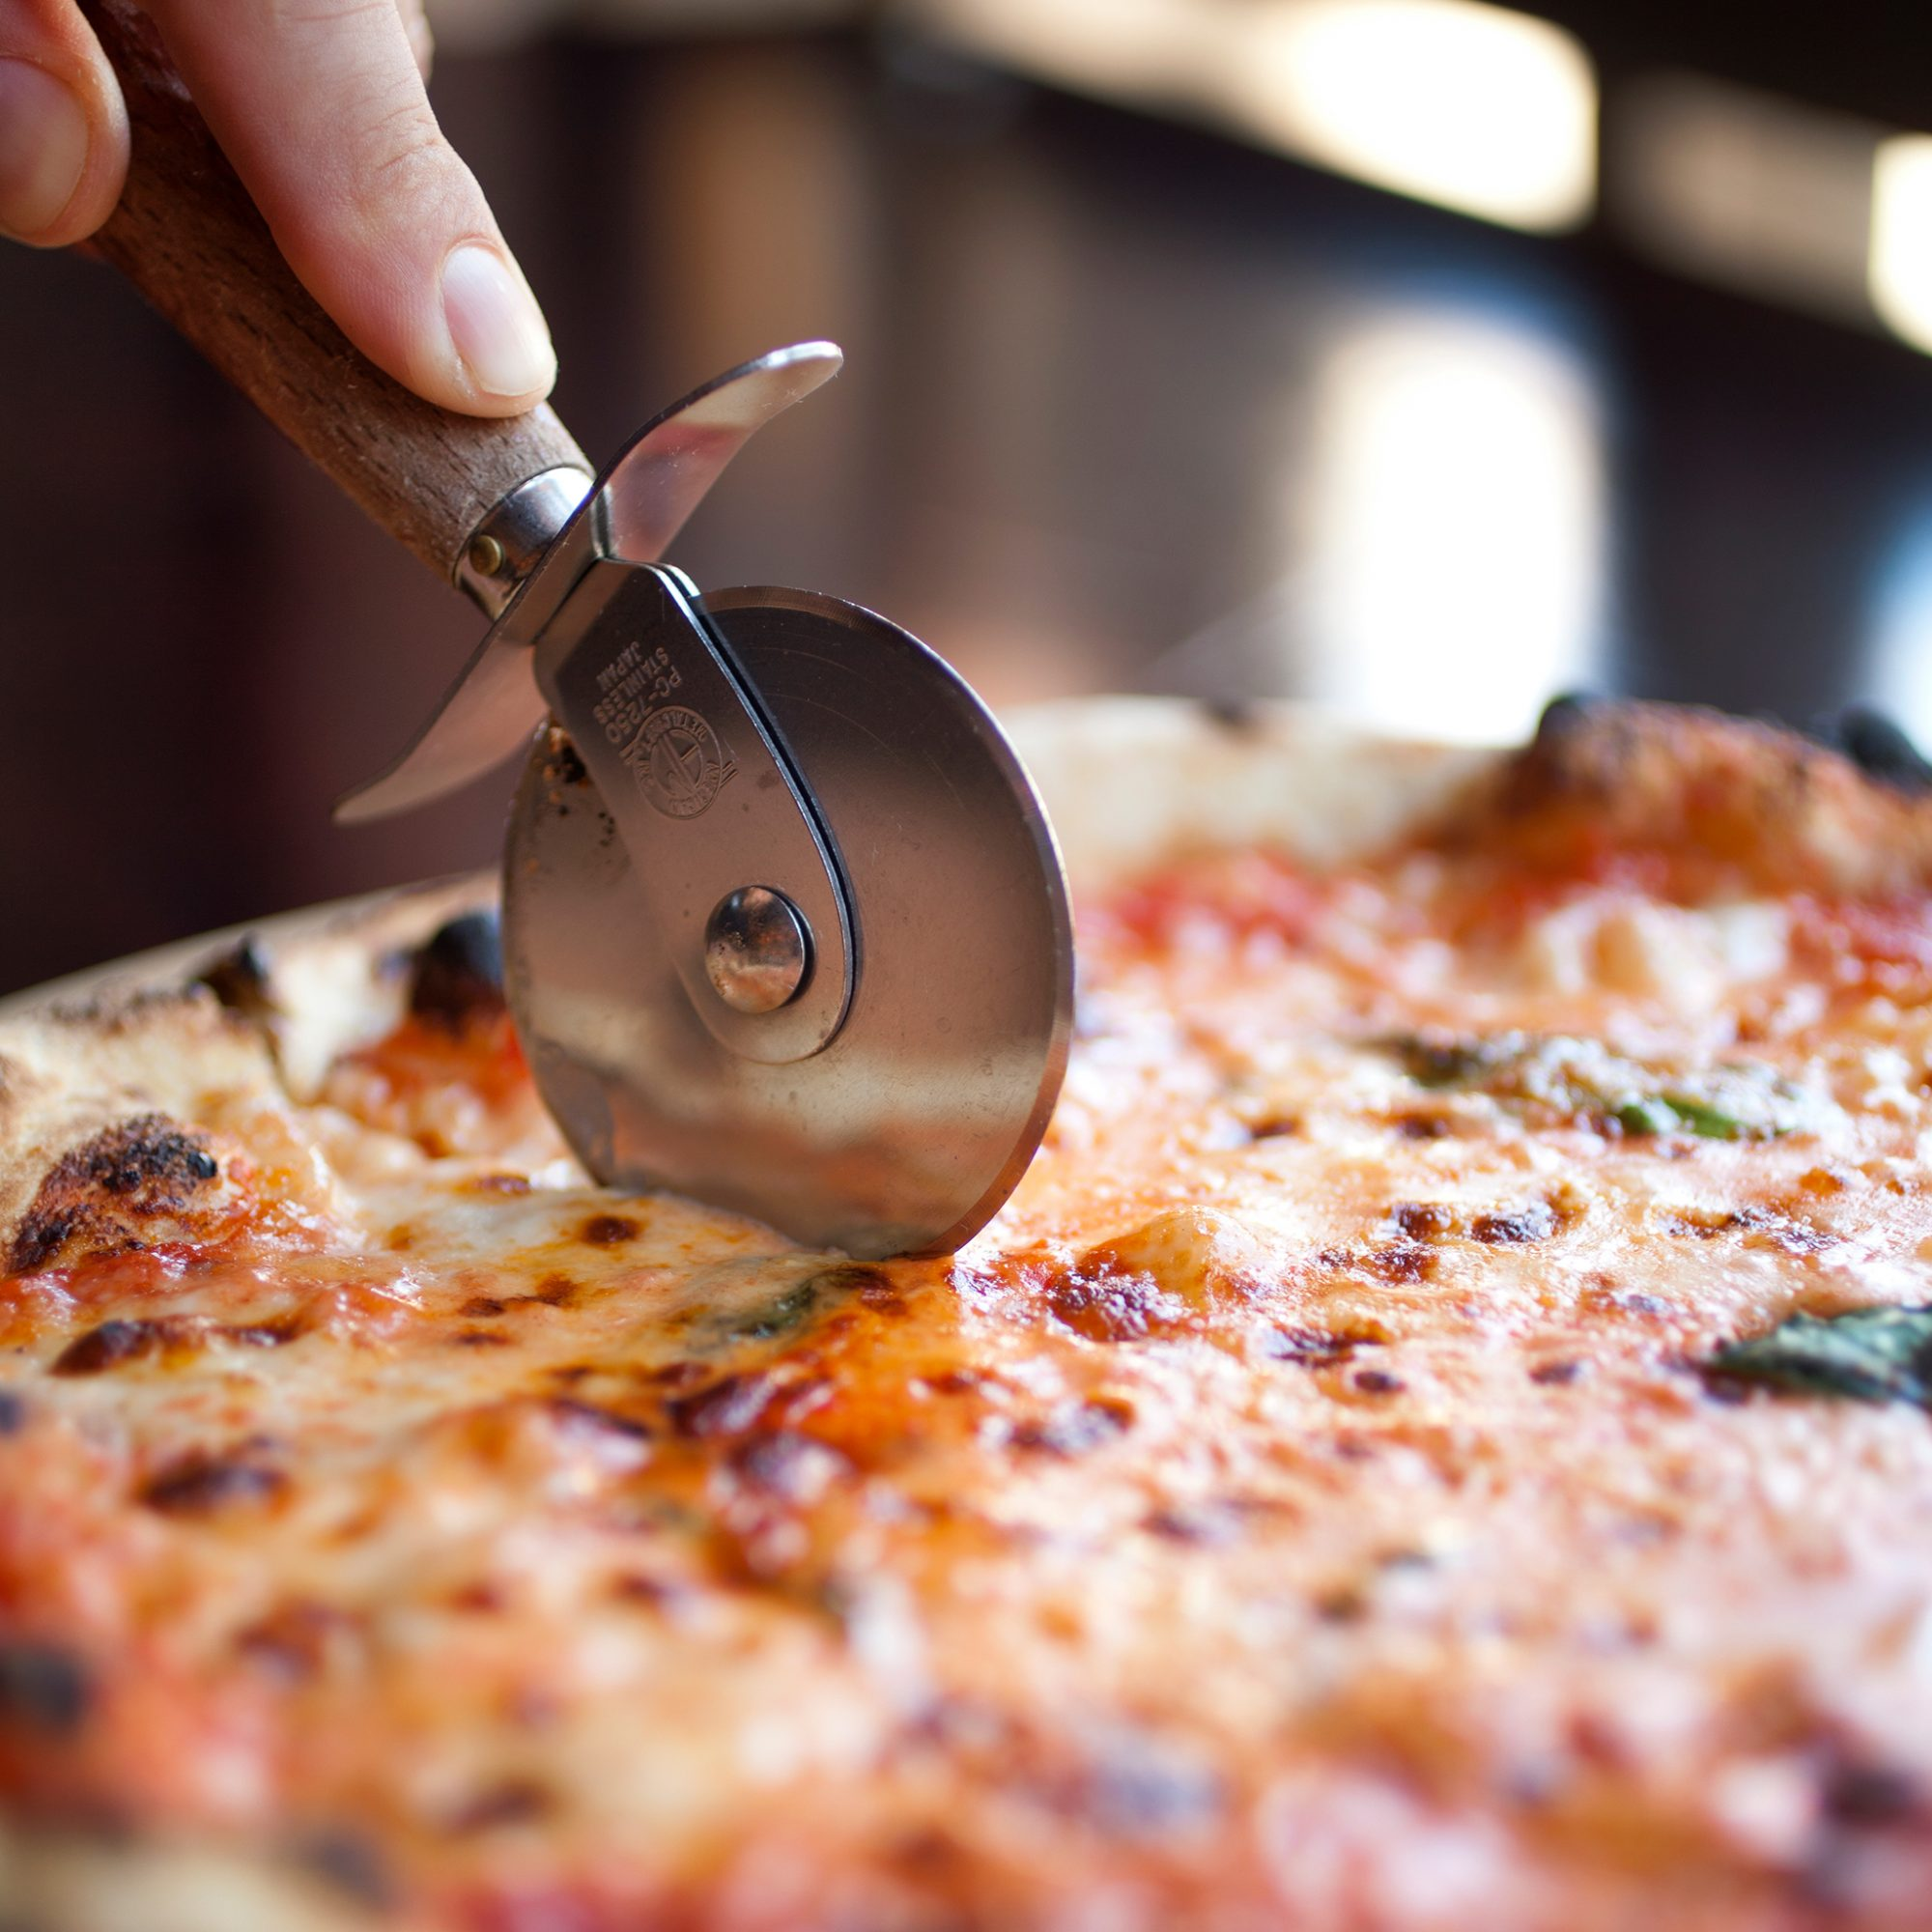 HOW TO MATHEMATICALLY CUT A PIZZA FWX 1